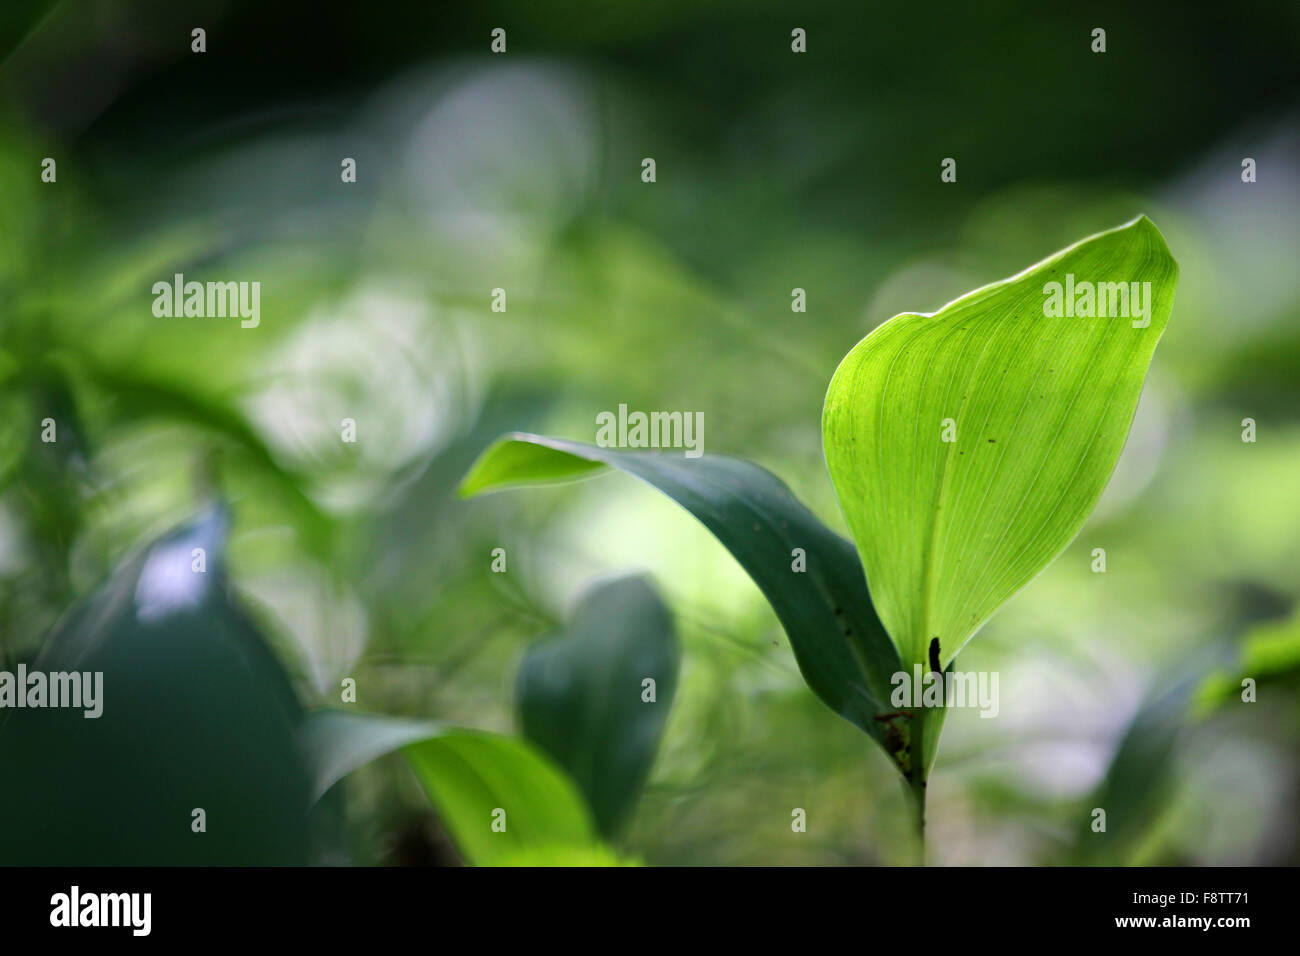 Macrophotography of single green plant on the green and dark green blurred background with yellow-white multiple - Stock Image